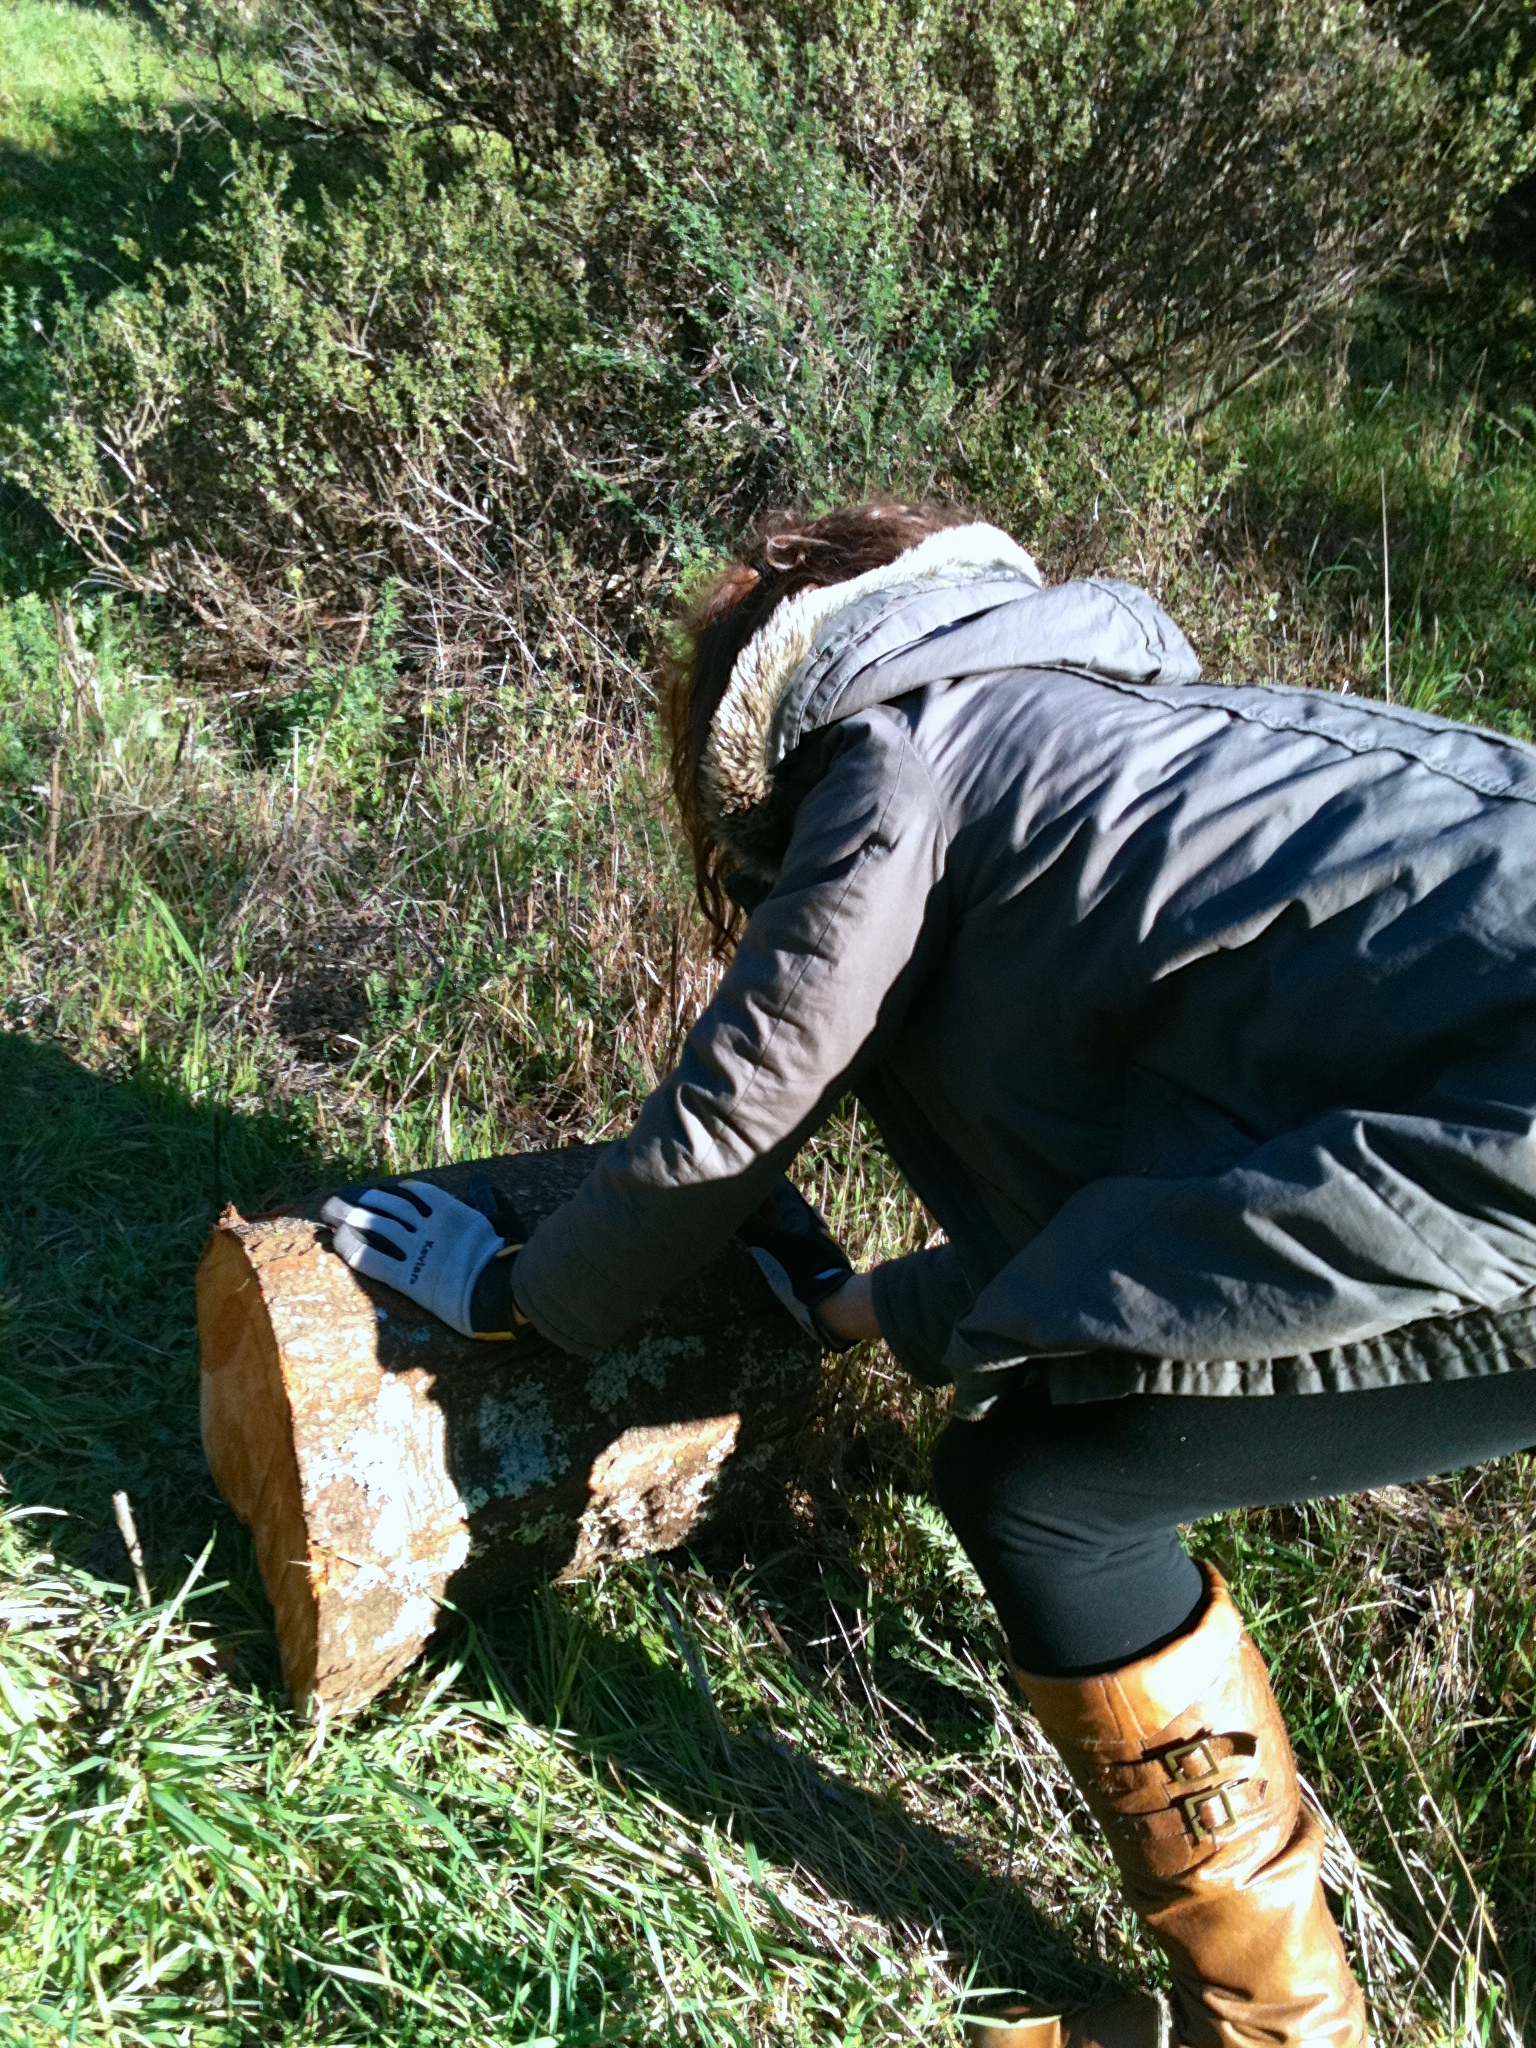 Hauling the stump out of a ravine.